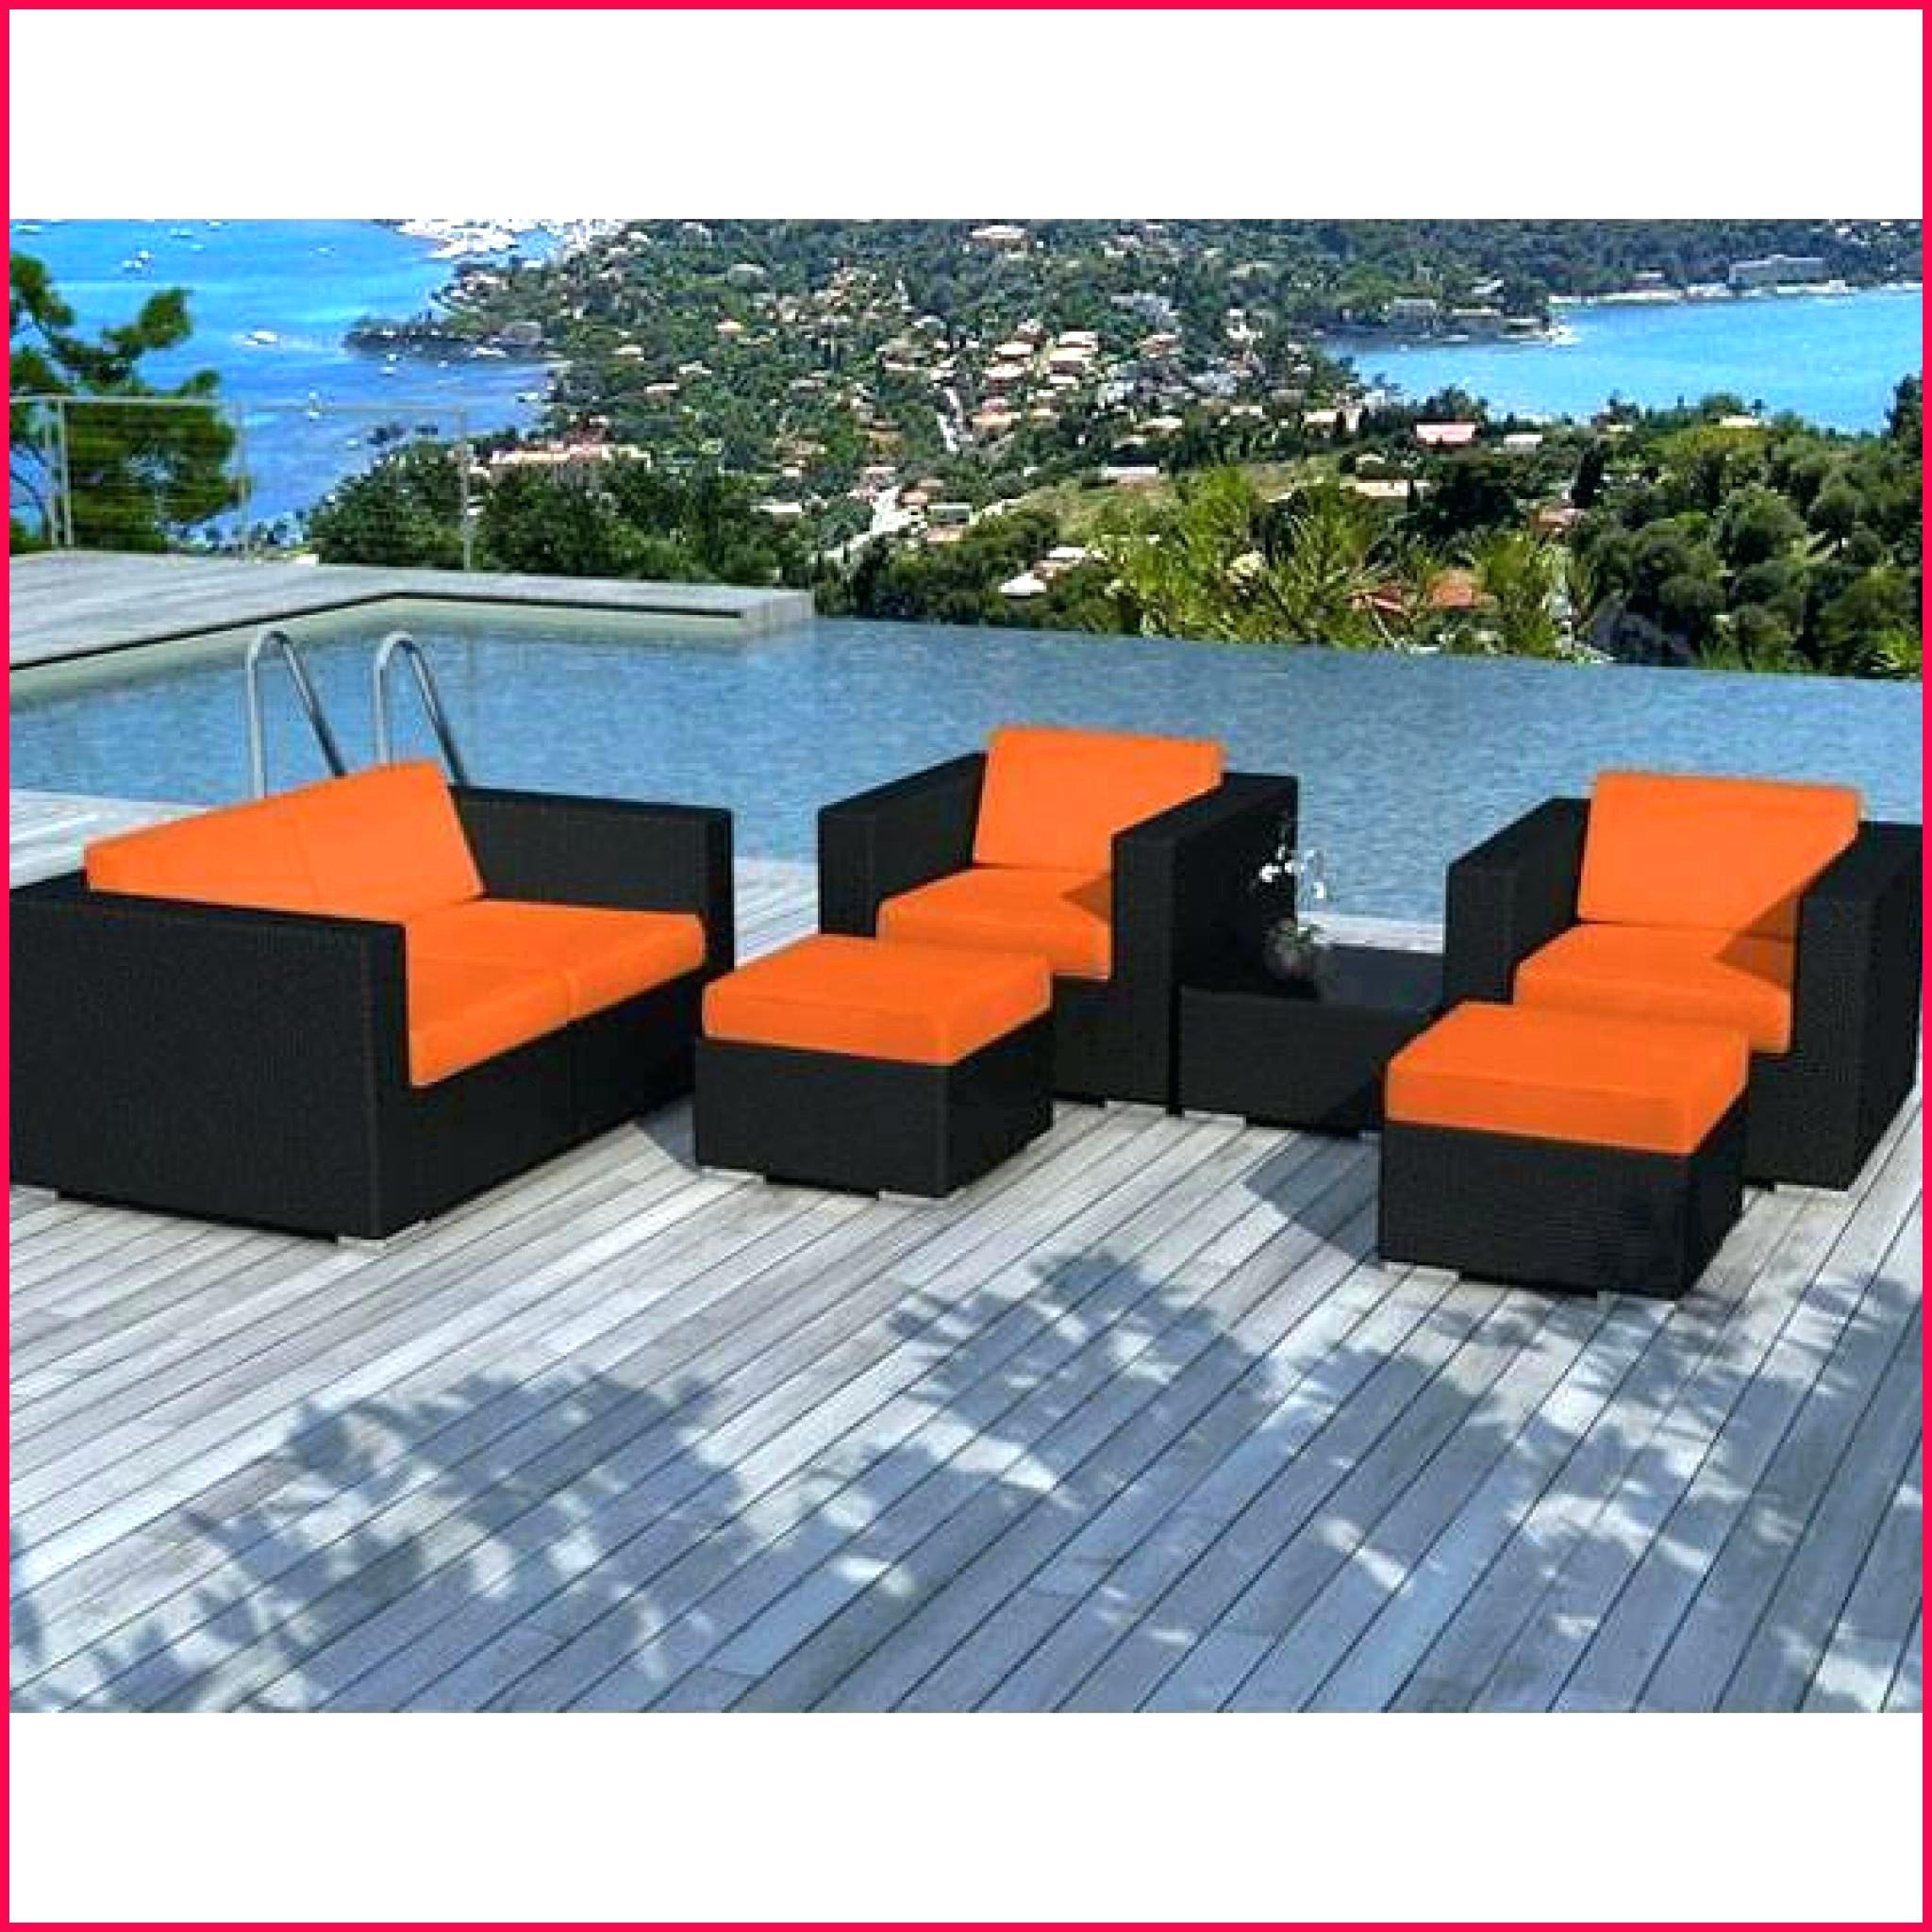 Salon de jardin allibert hawaii lounge set - Jardin piscine et Cabane